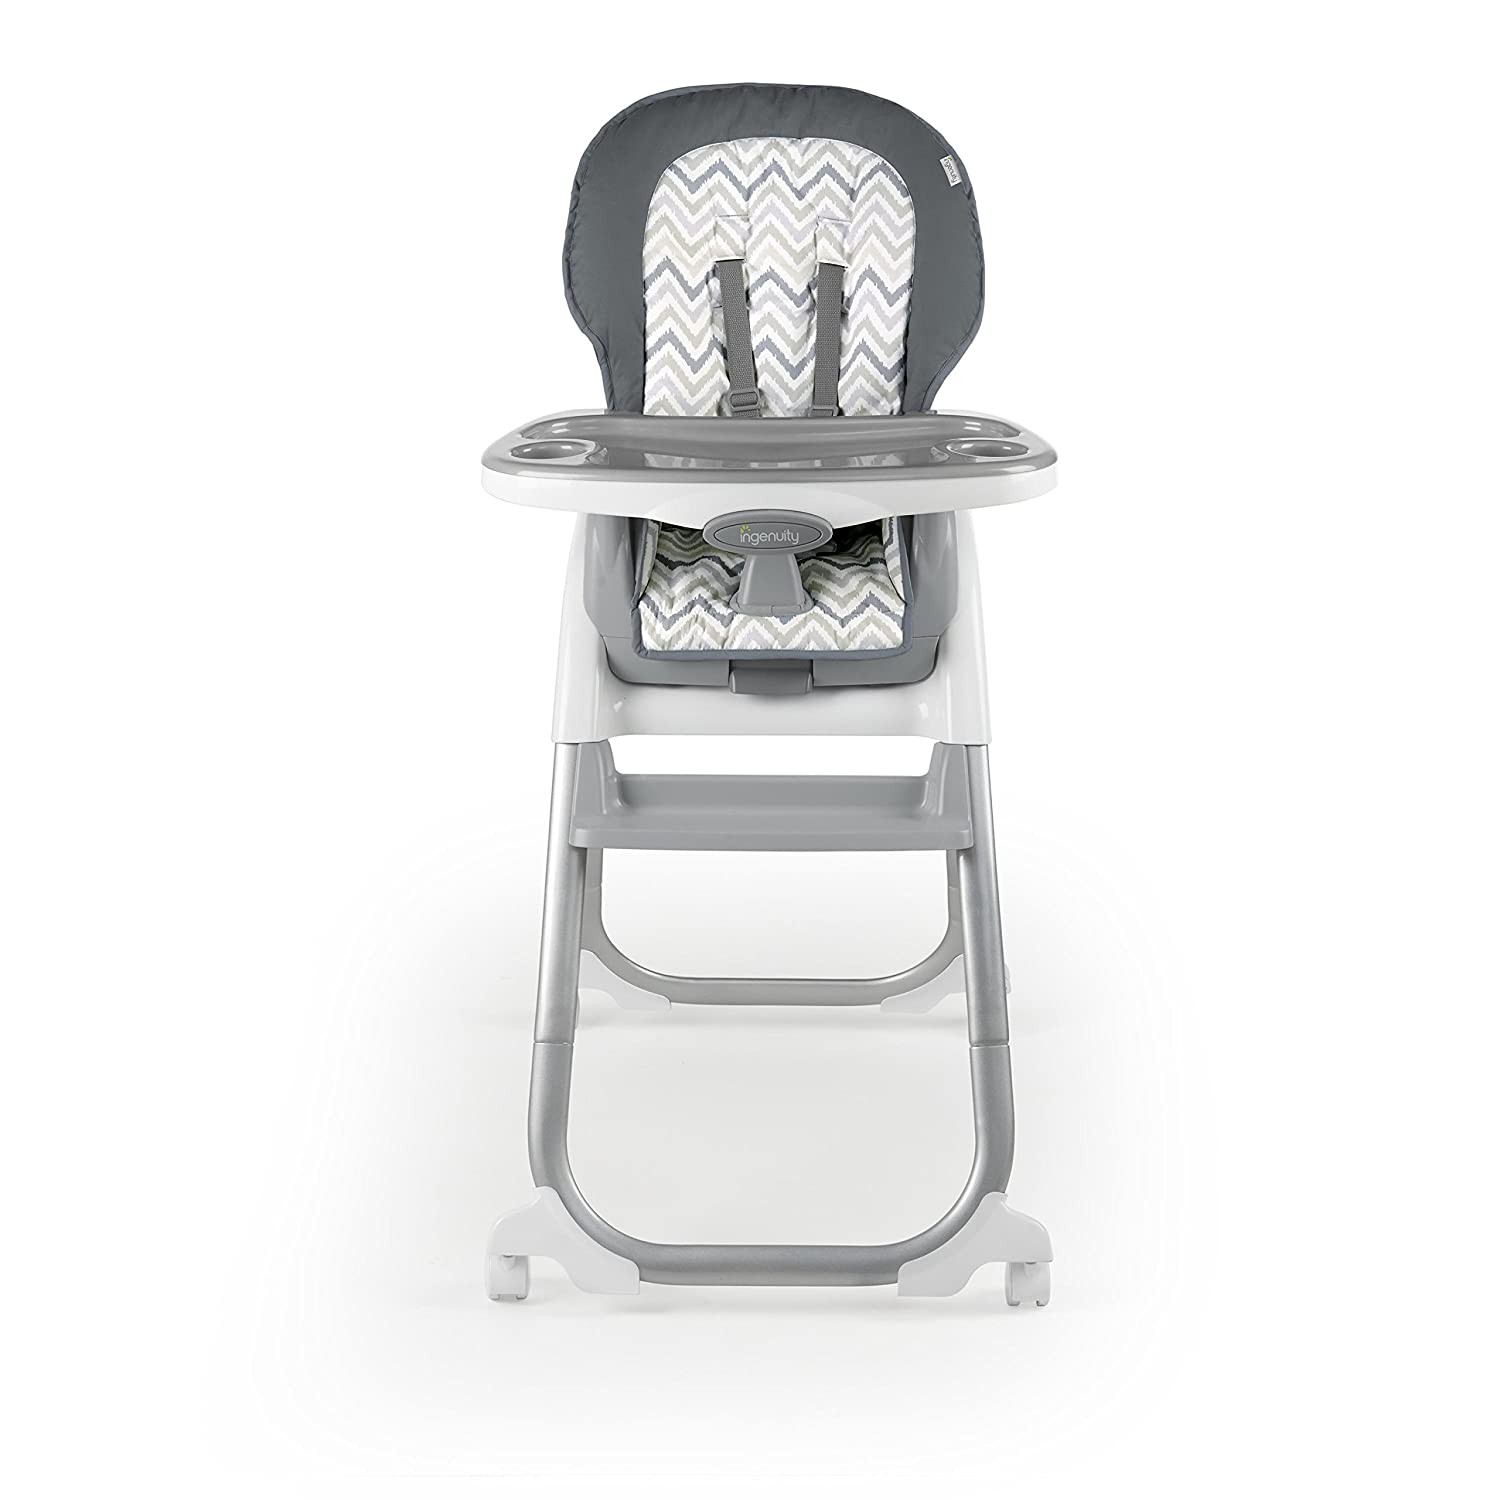 Ingenuity Trio Elite 3-In-1 High Chair - Braden Kids II - (Carson CA) 11310-1